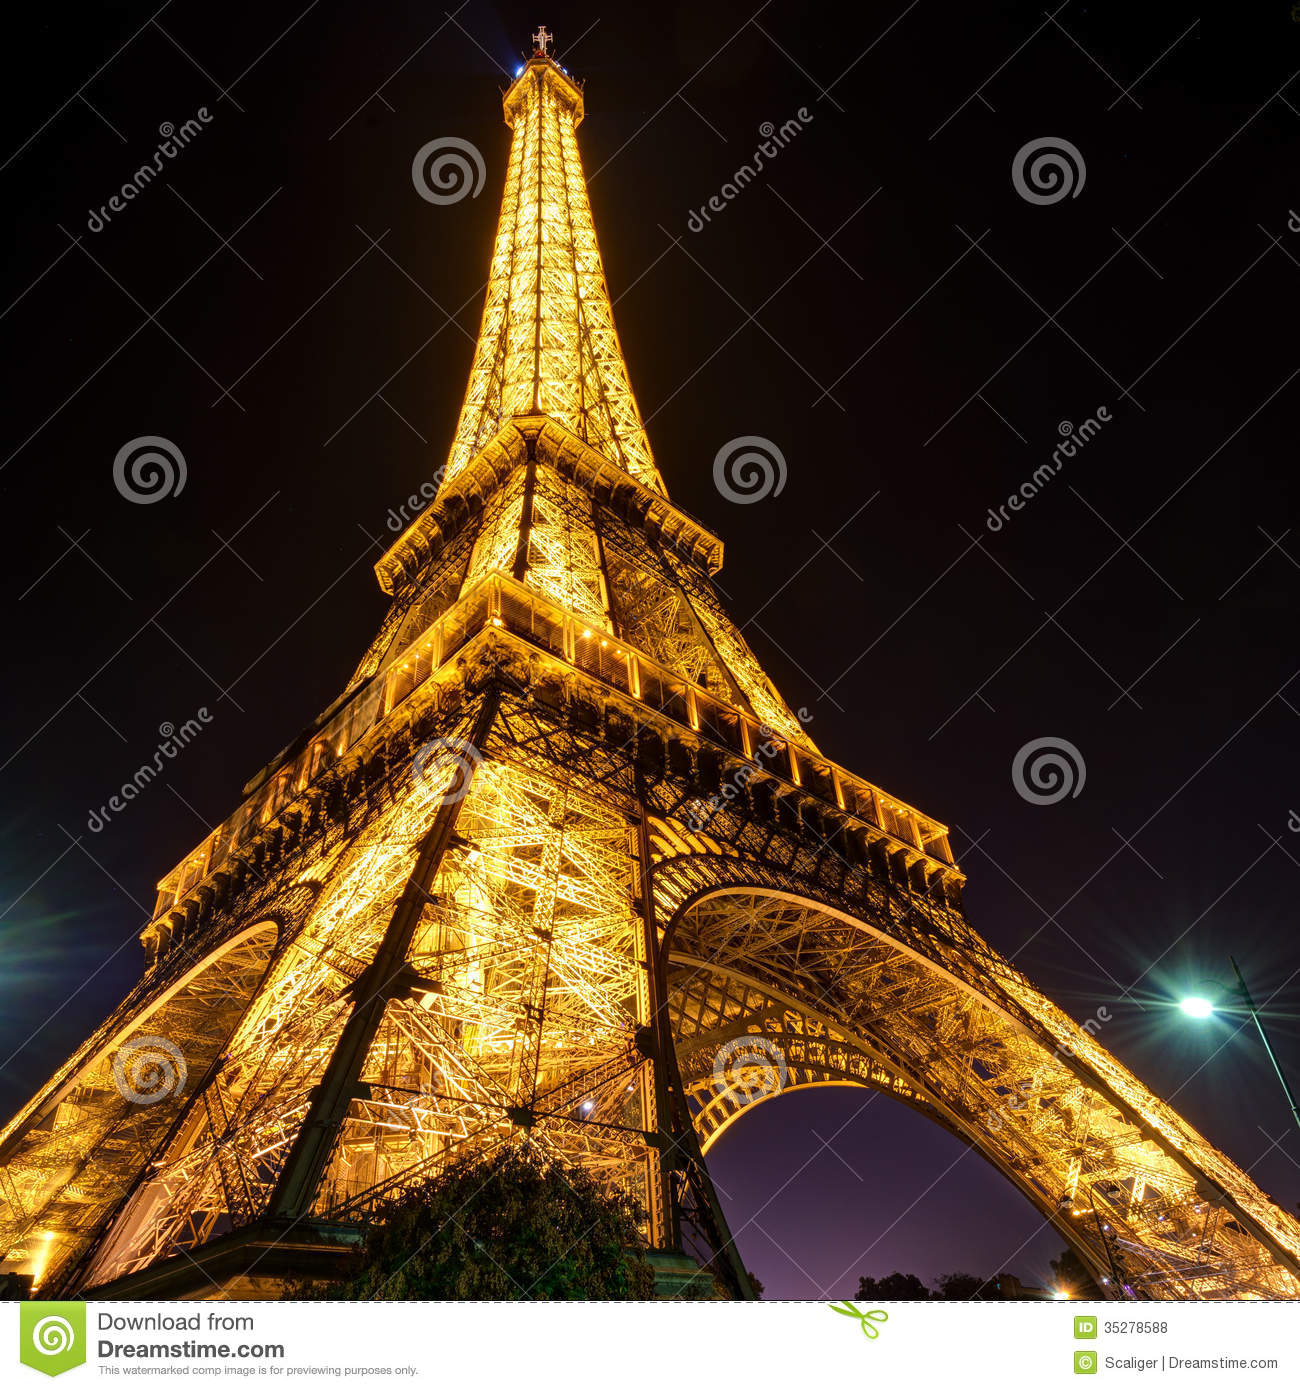 Paris Main Attractions In One Day: The Eiffel Tower At Night In Paris Editorial Stock Photo